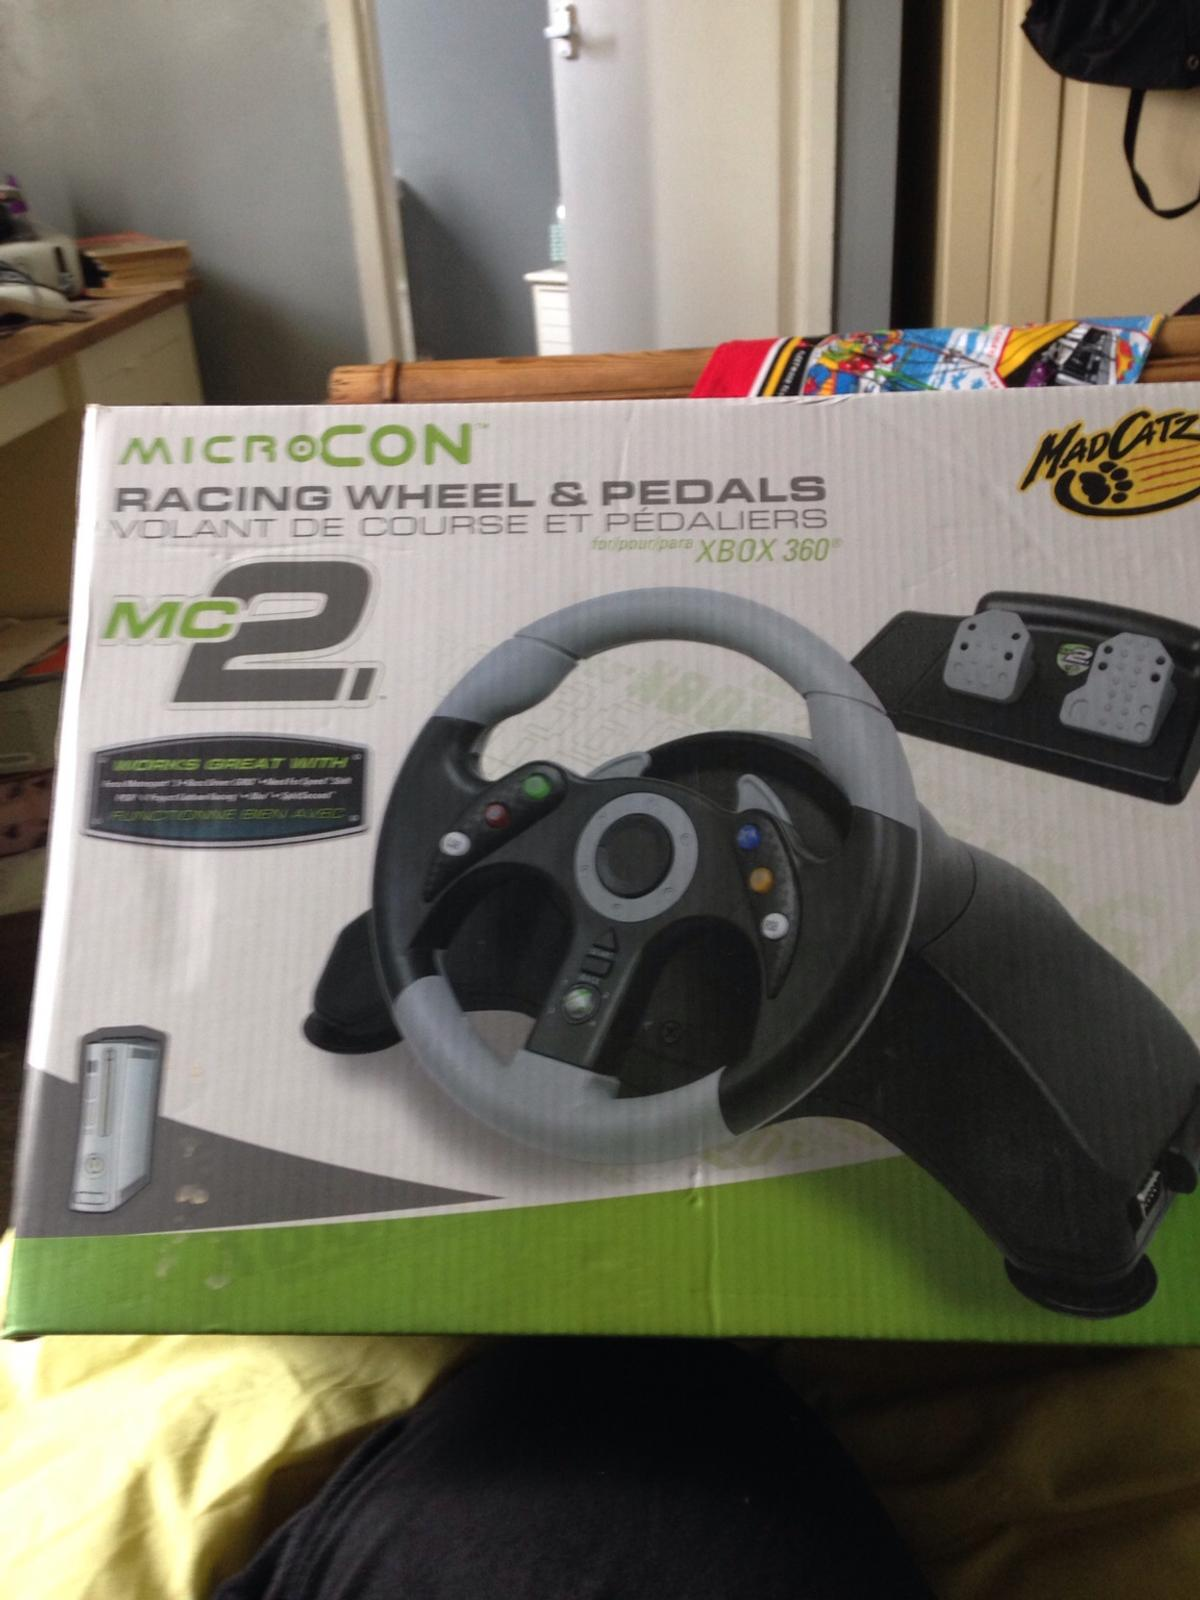 73e49338cec Racing wheel and pedals in Walsall for £10.00 for sale - Shpock